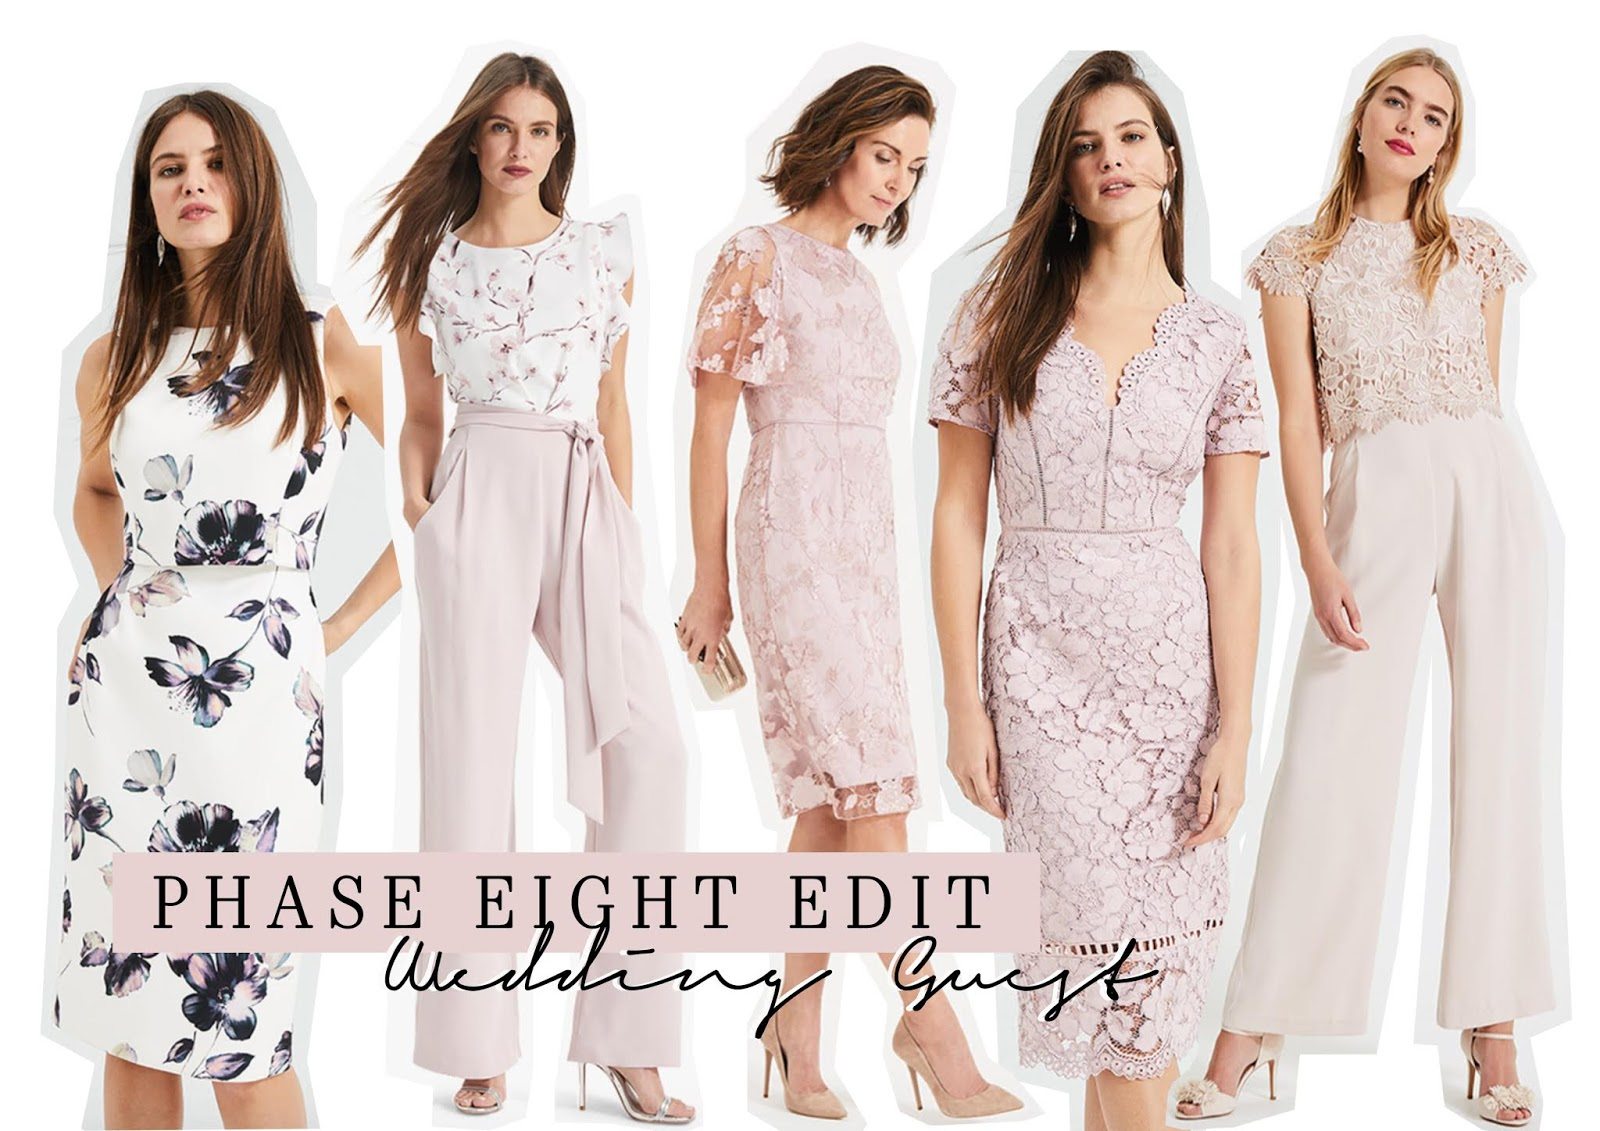 Phase Eight Wedding Guest Mother Of The Bride Edit Blush And Bumble